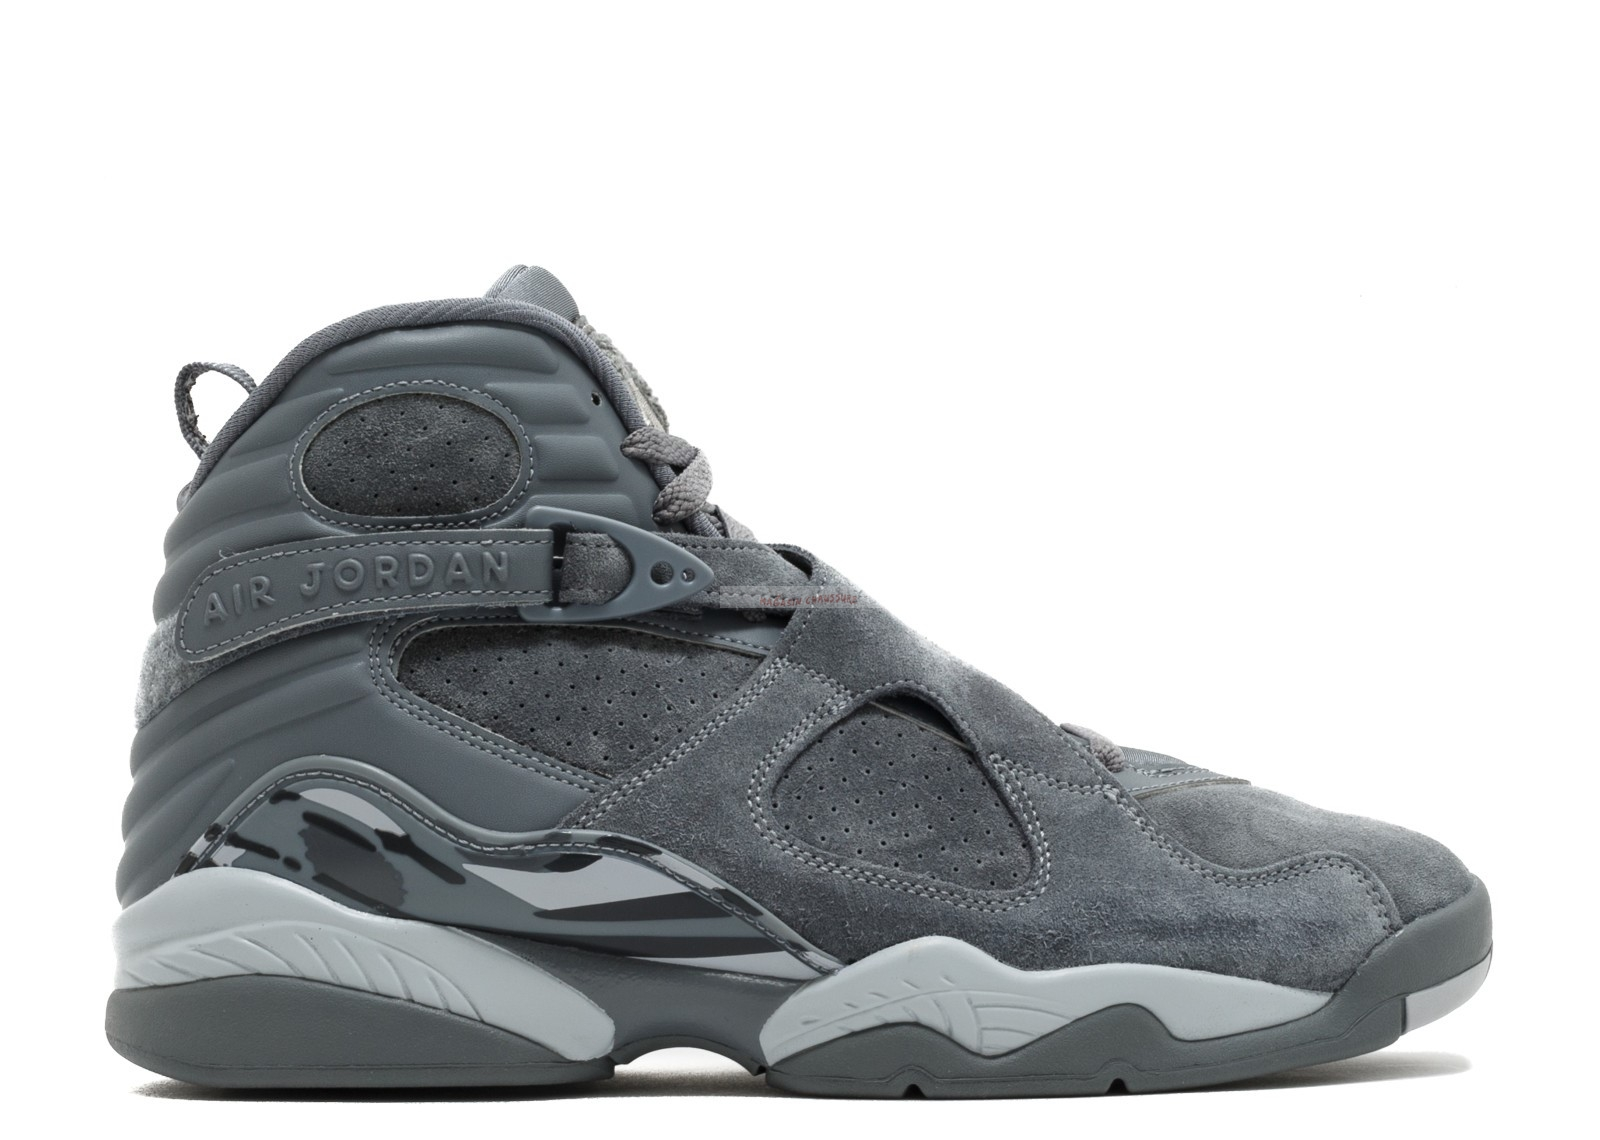 Air Jordan 8 Retro Gris (305381-014) Chaussure de Basket